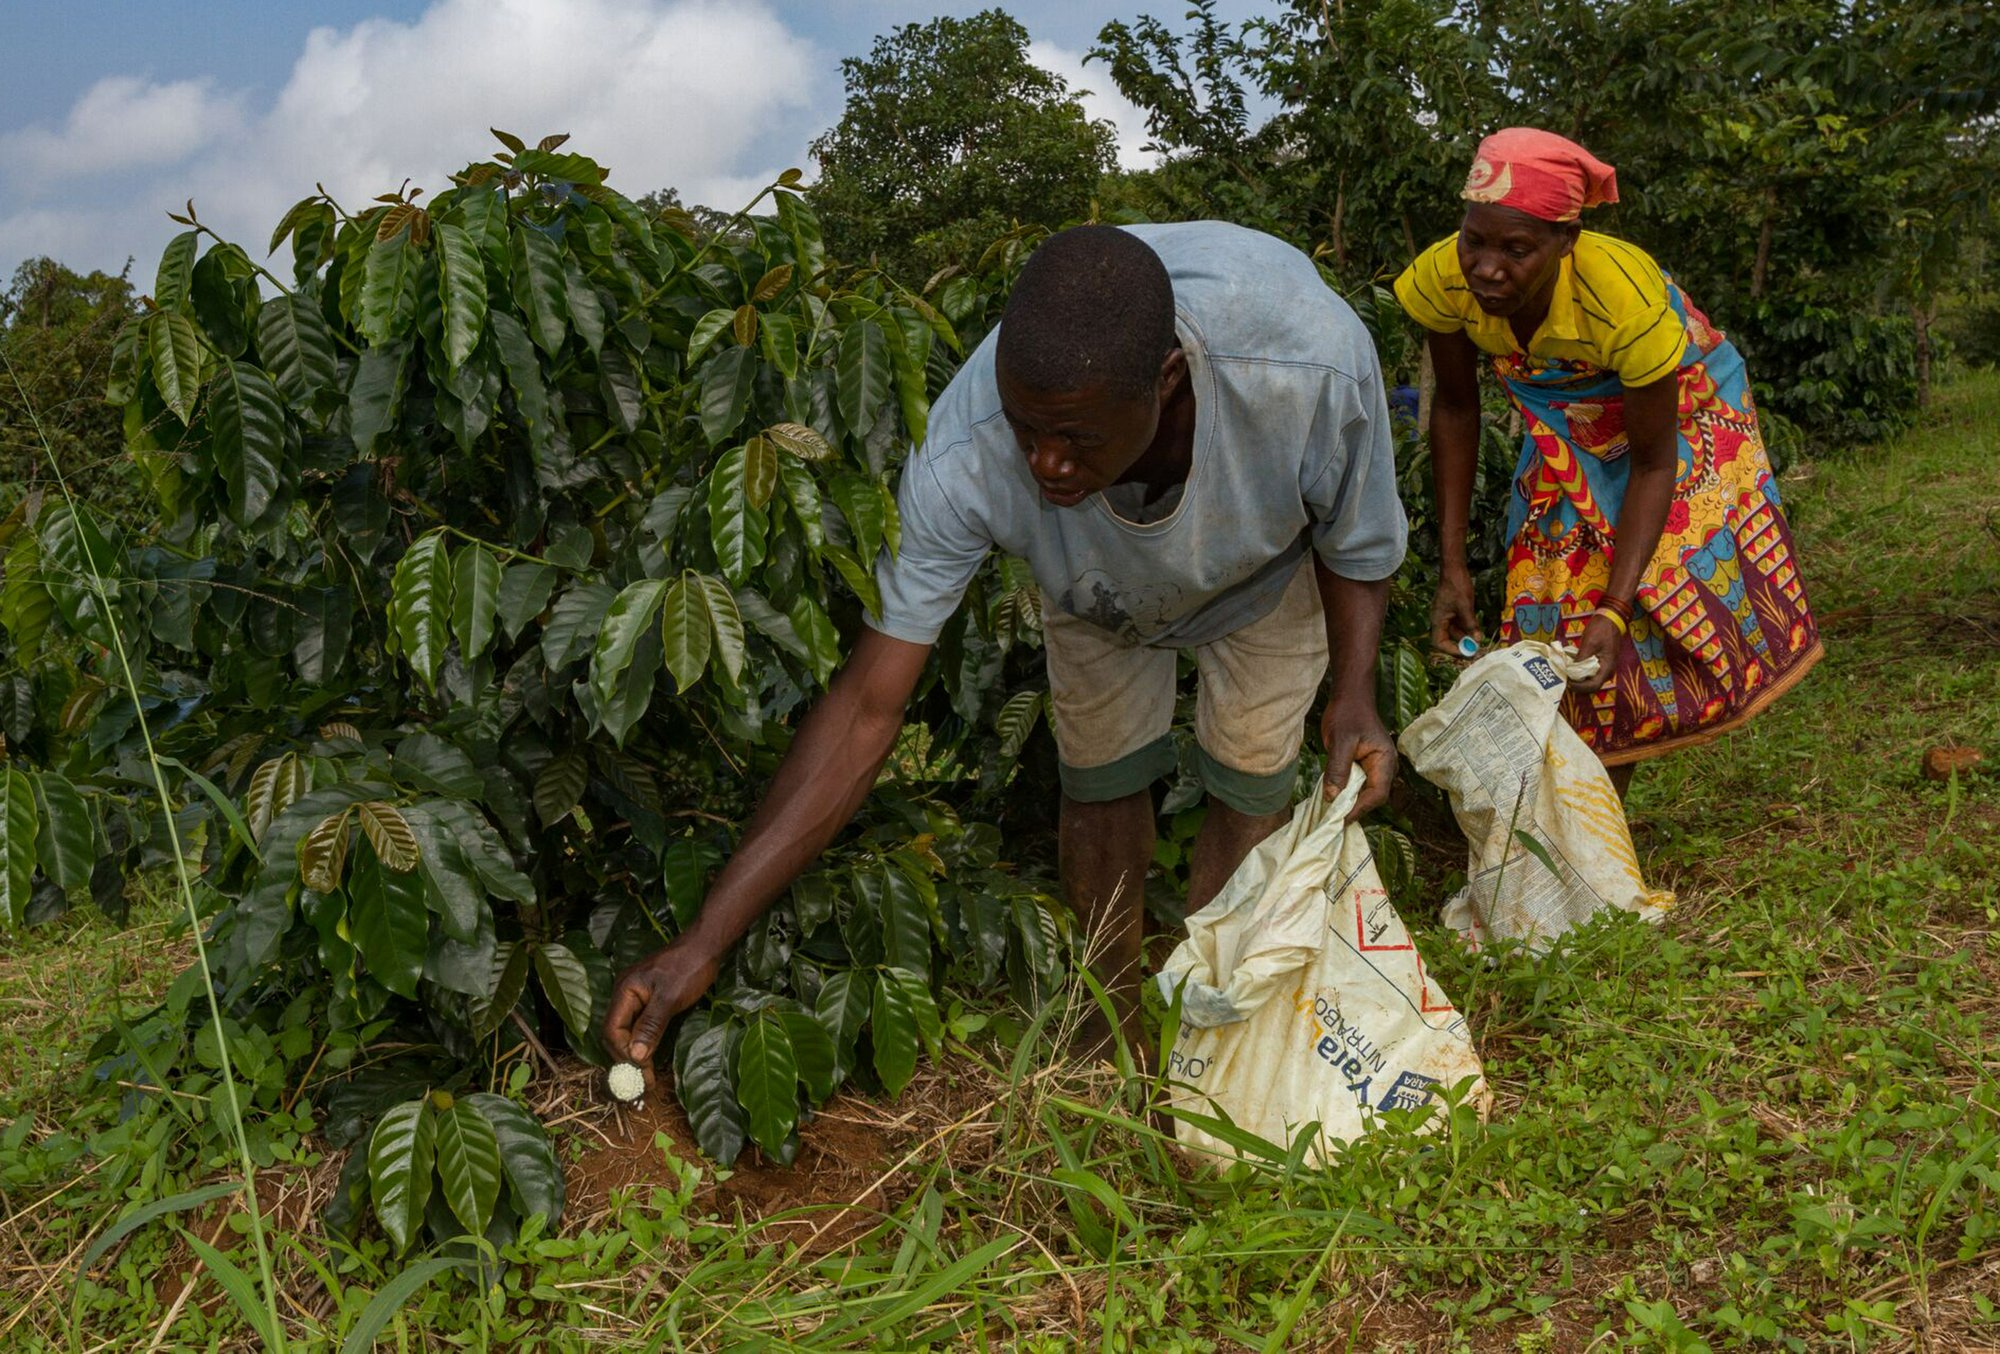 Photograph of workers fertilizing coffee plants.